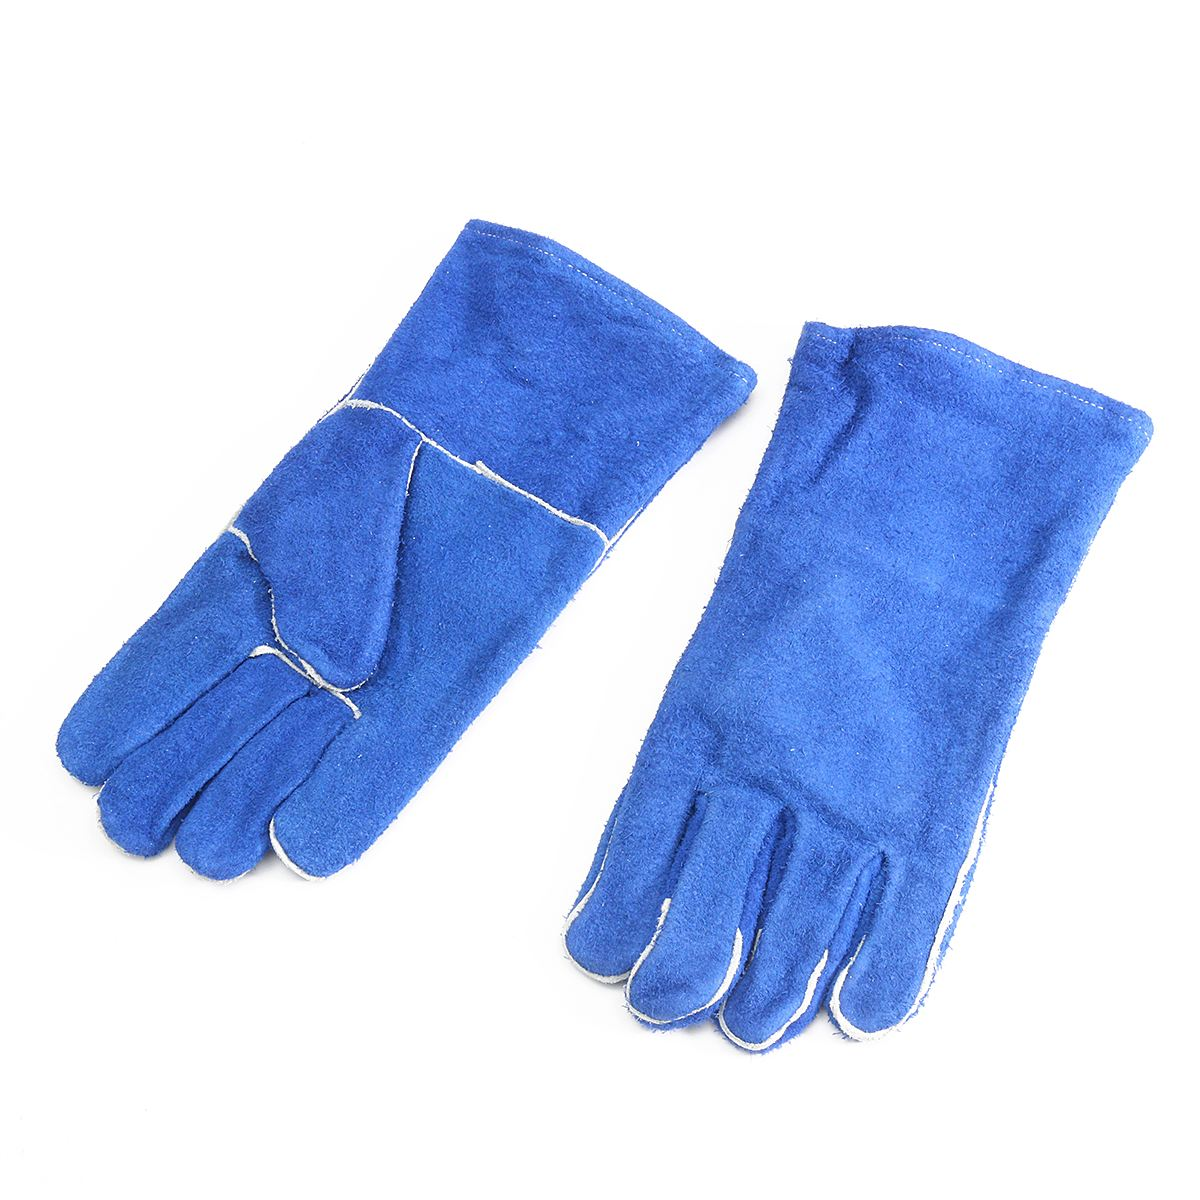 NEW Blue Woodburner Gloves Long Lined Welders Gauntlets Log Fire High Temp  Stove XL Workplace Safety - Popular Stove Gloves-Buy Cheap Stove Gloves Lots From China Stove